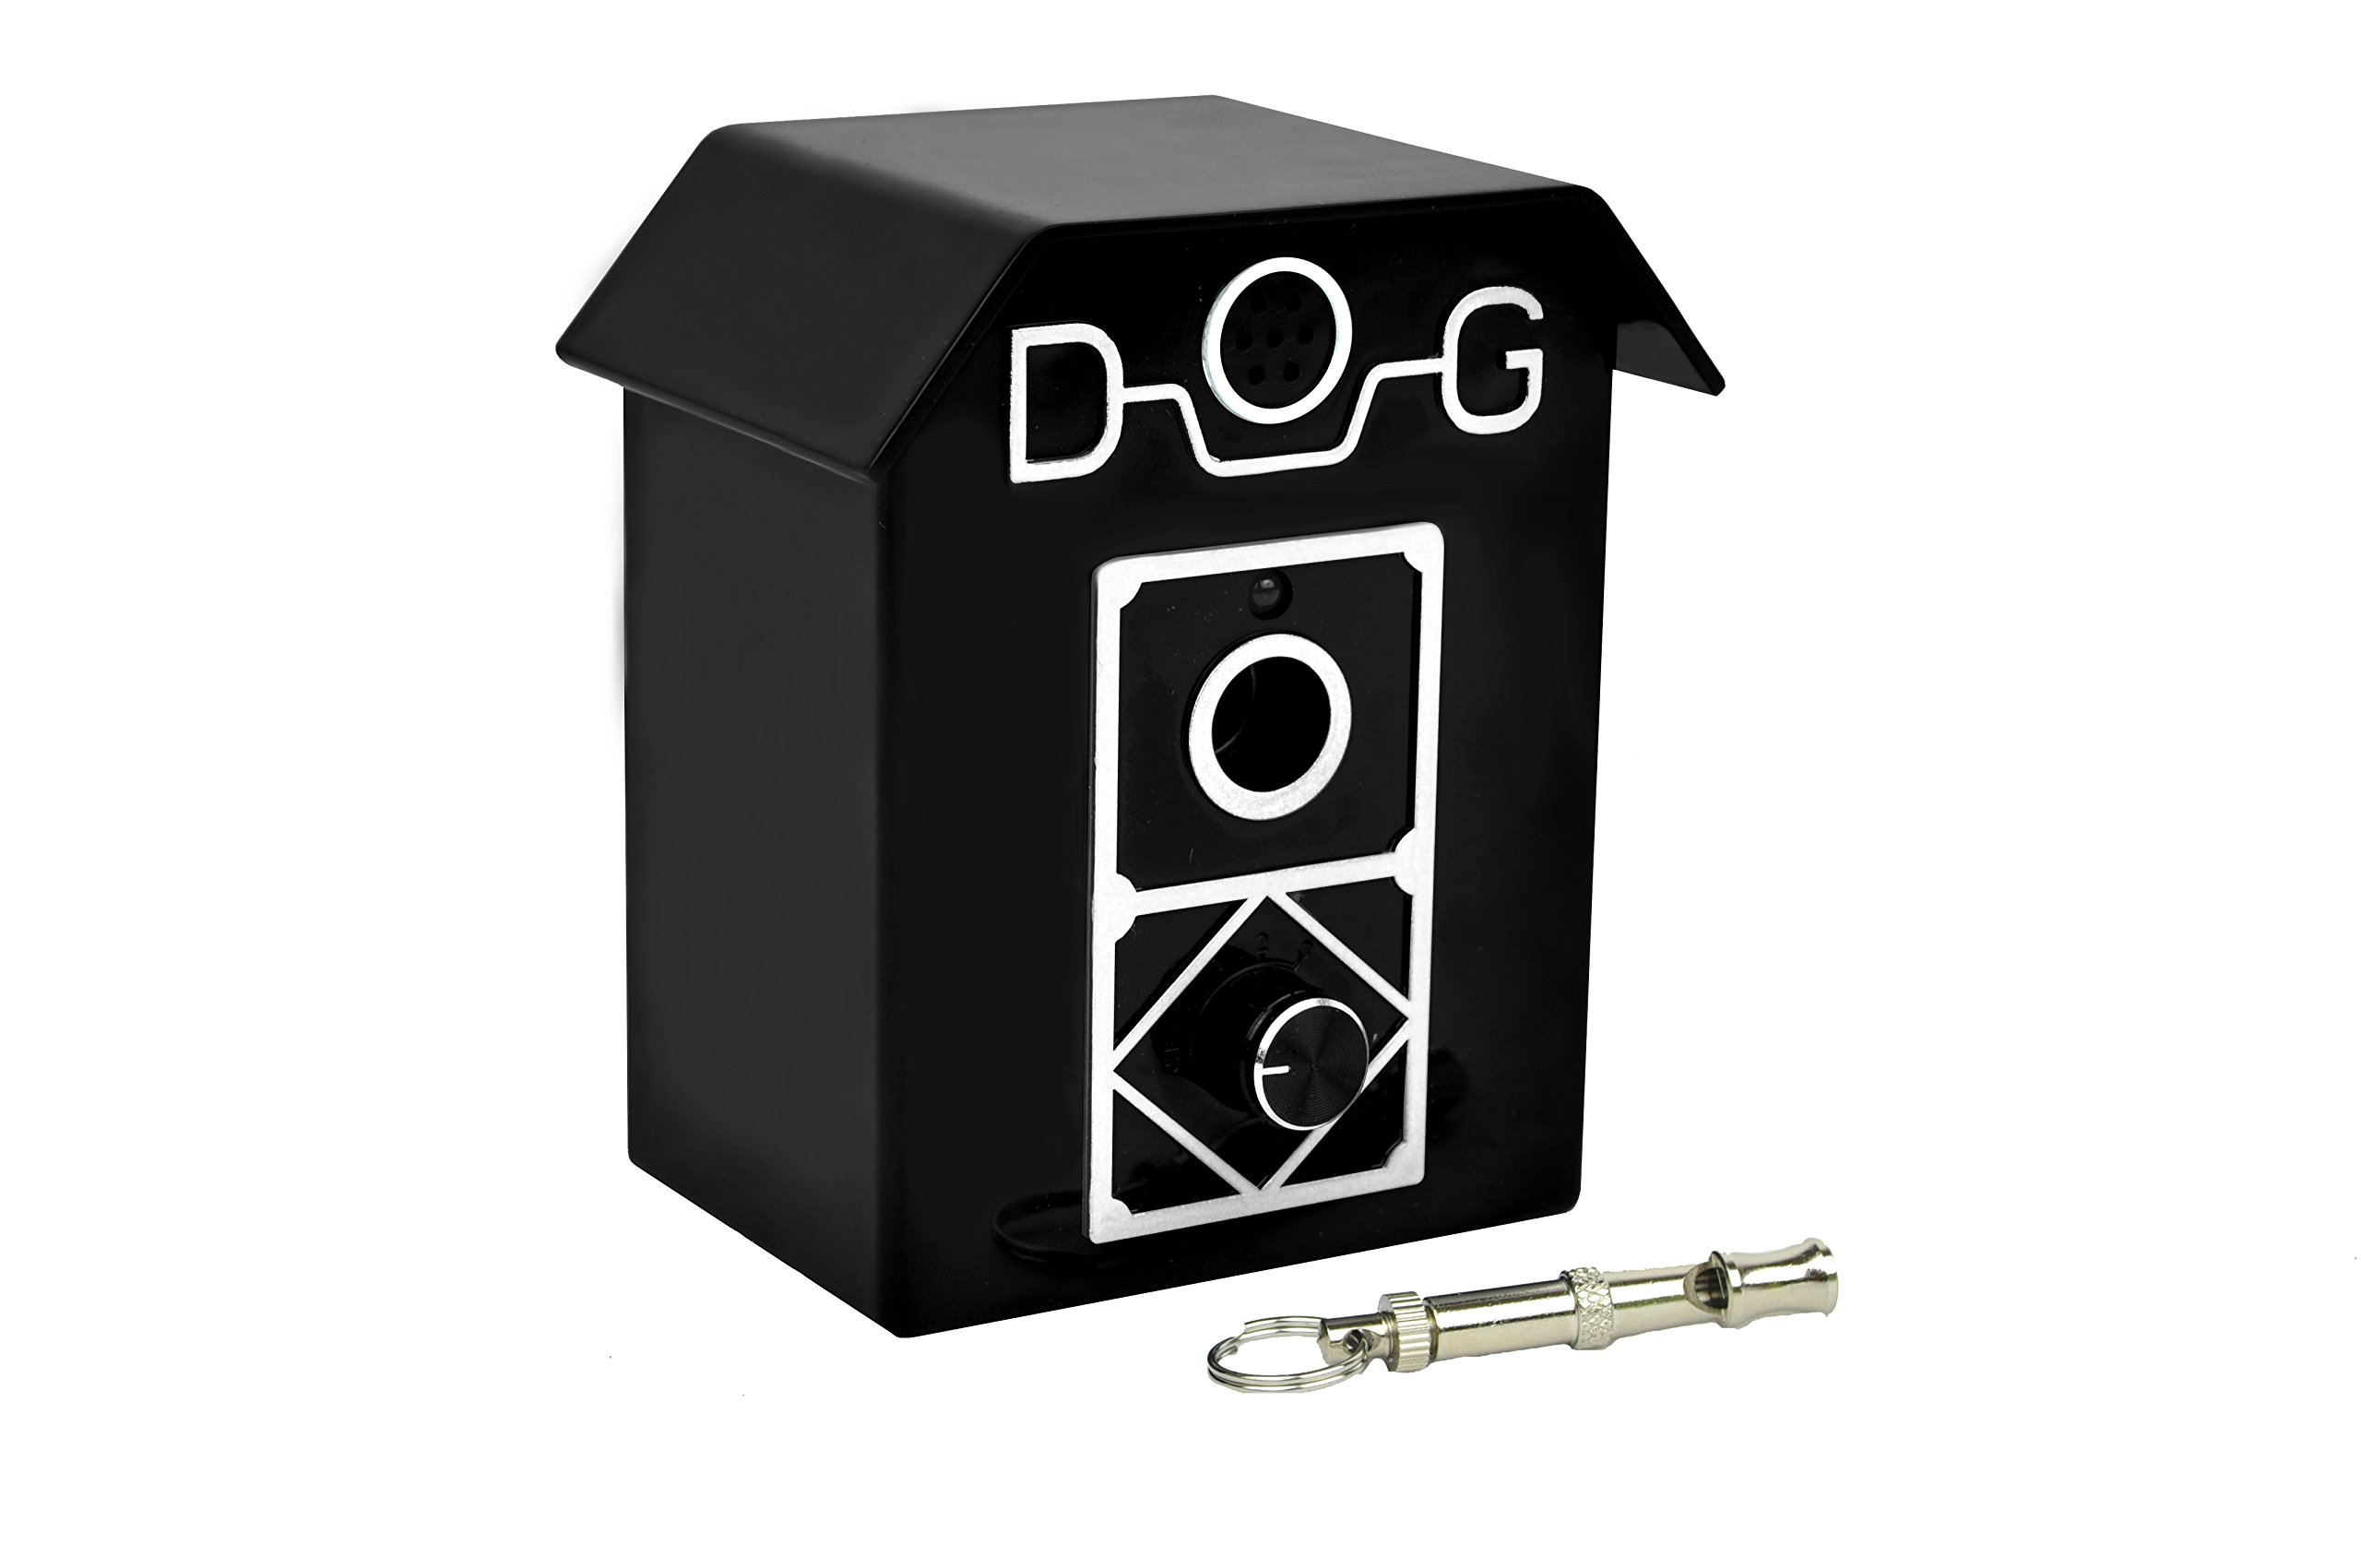 Ultrasonic Dog Bark Control Controller and Deterrent, Works Great Indoor and Outdoor, Includes FREE Anti Bark Dog Whistle - Effective Dog Behavior Training Tool, Up to 50 Feet Radius